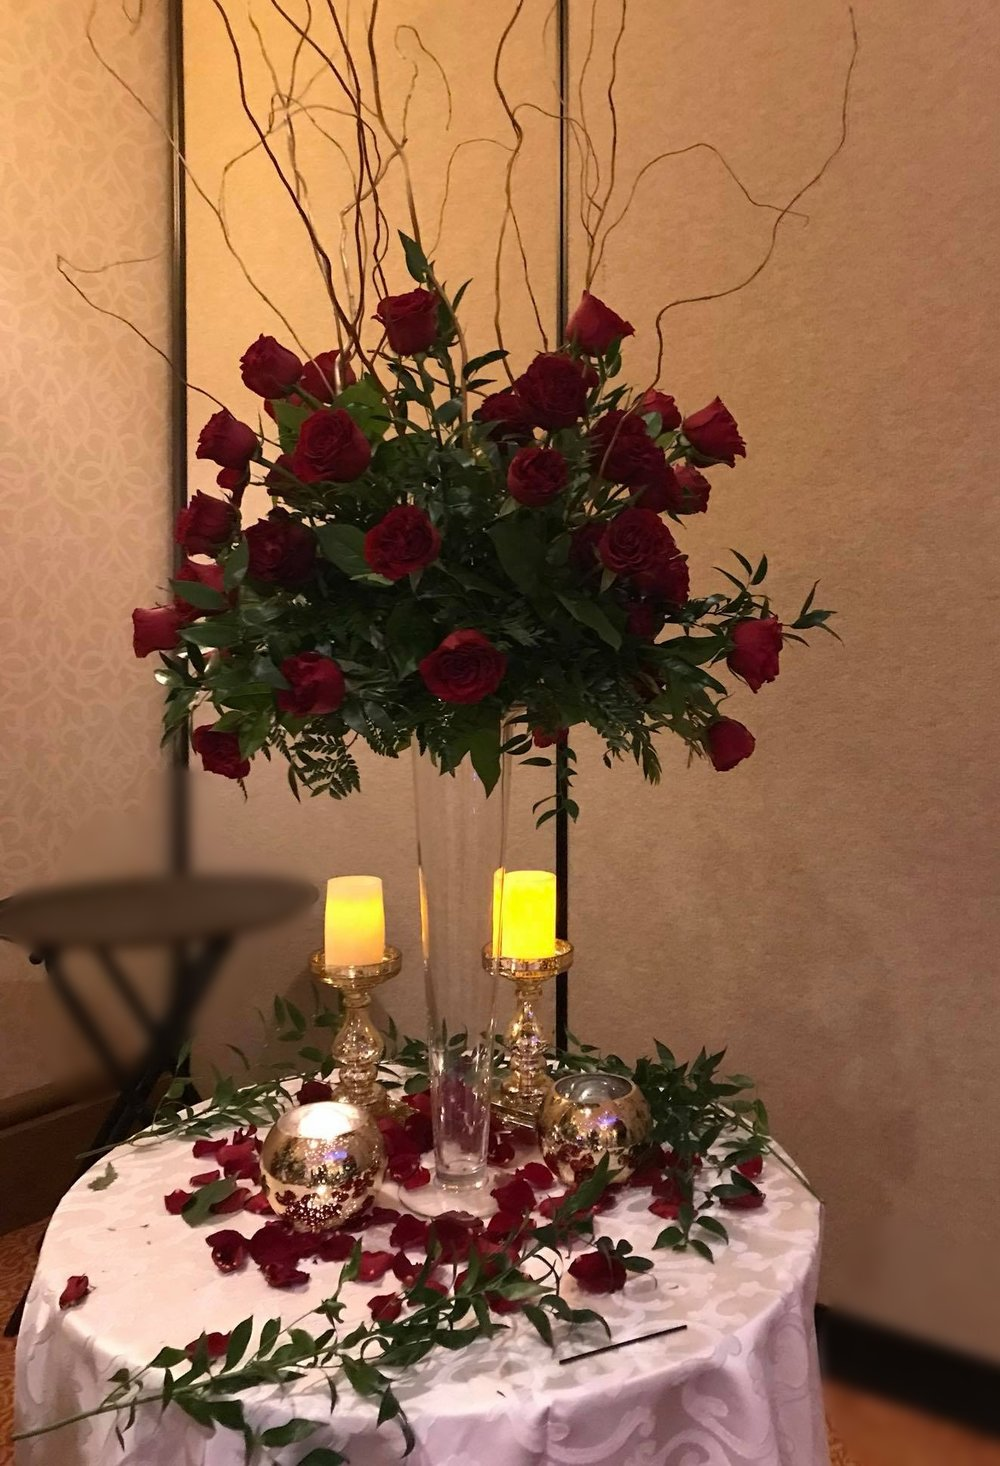 40 roses for 40 years - Vow Renewal- Diamonds and Pearls Events.jpg